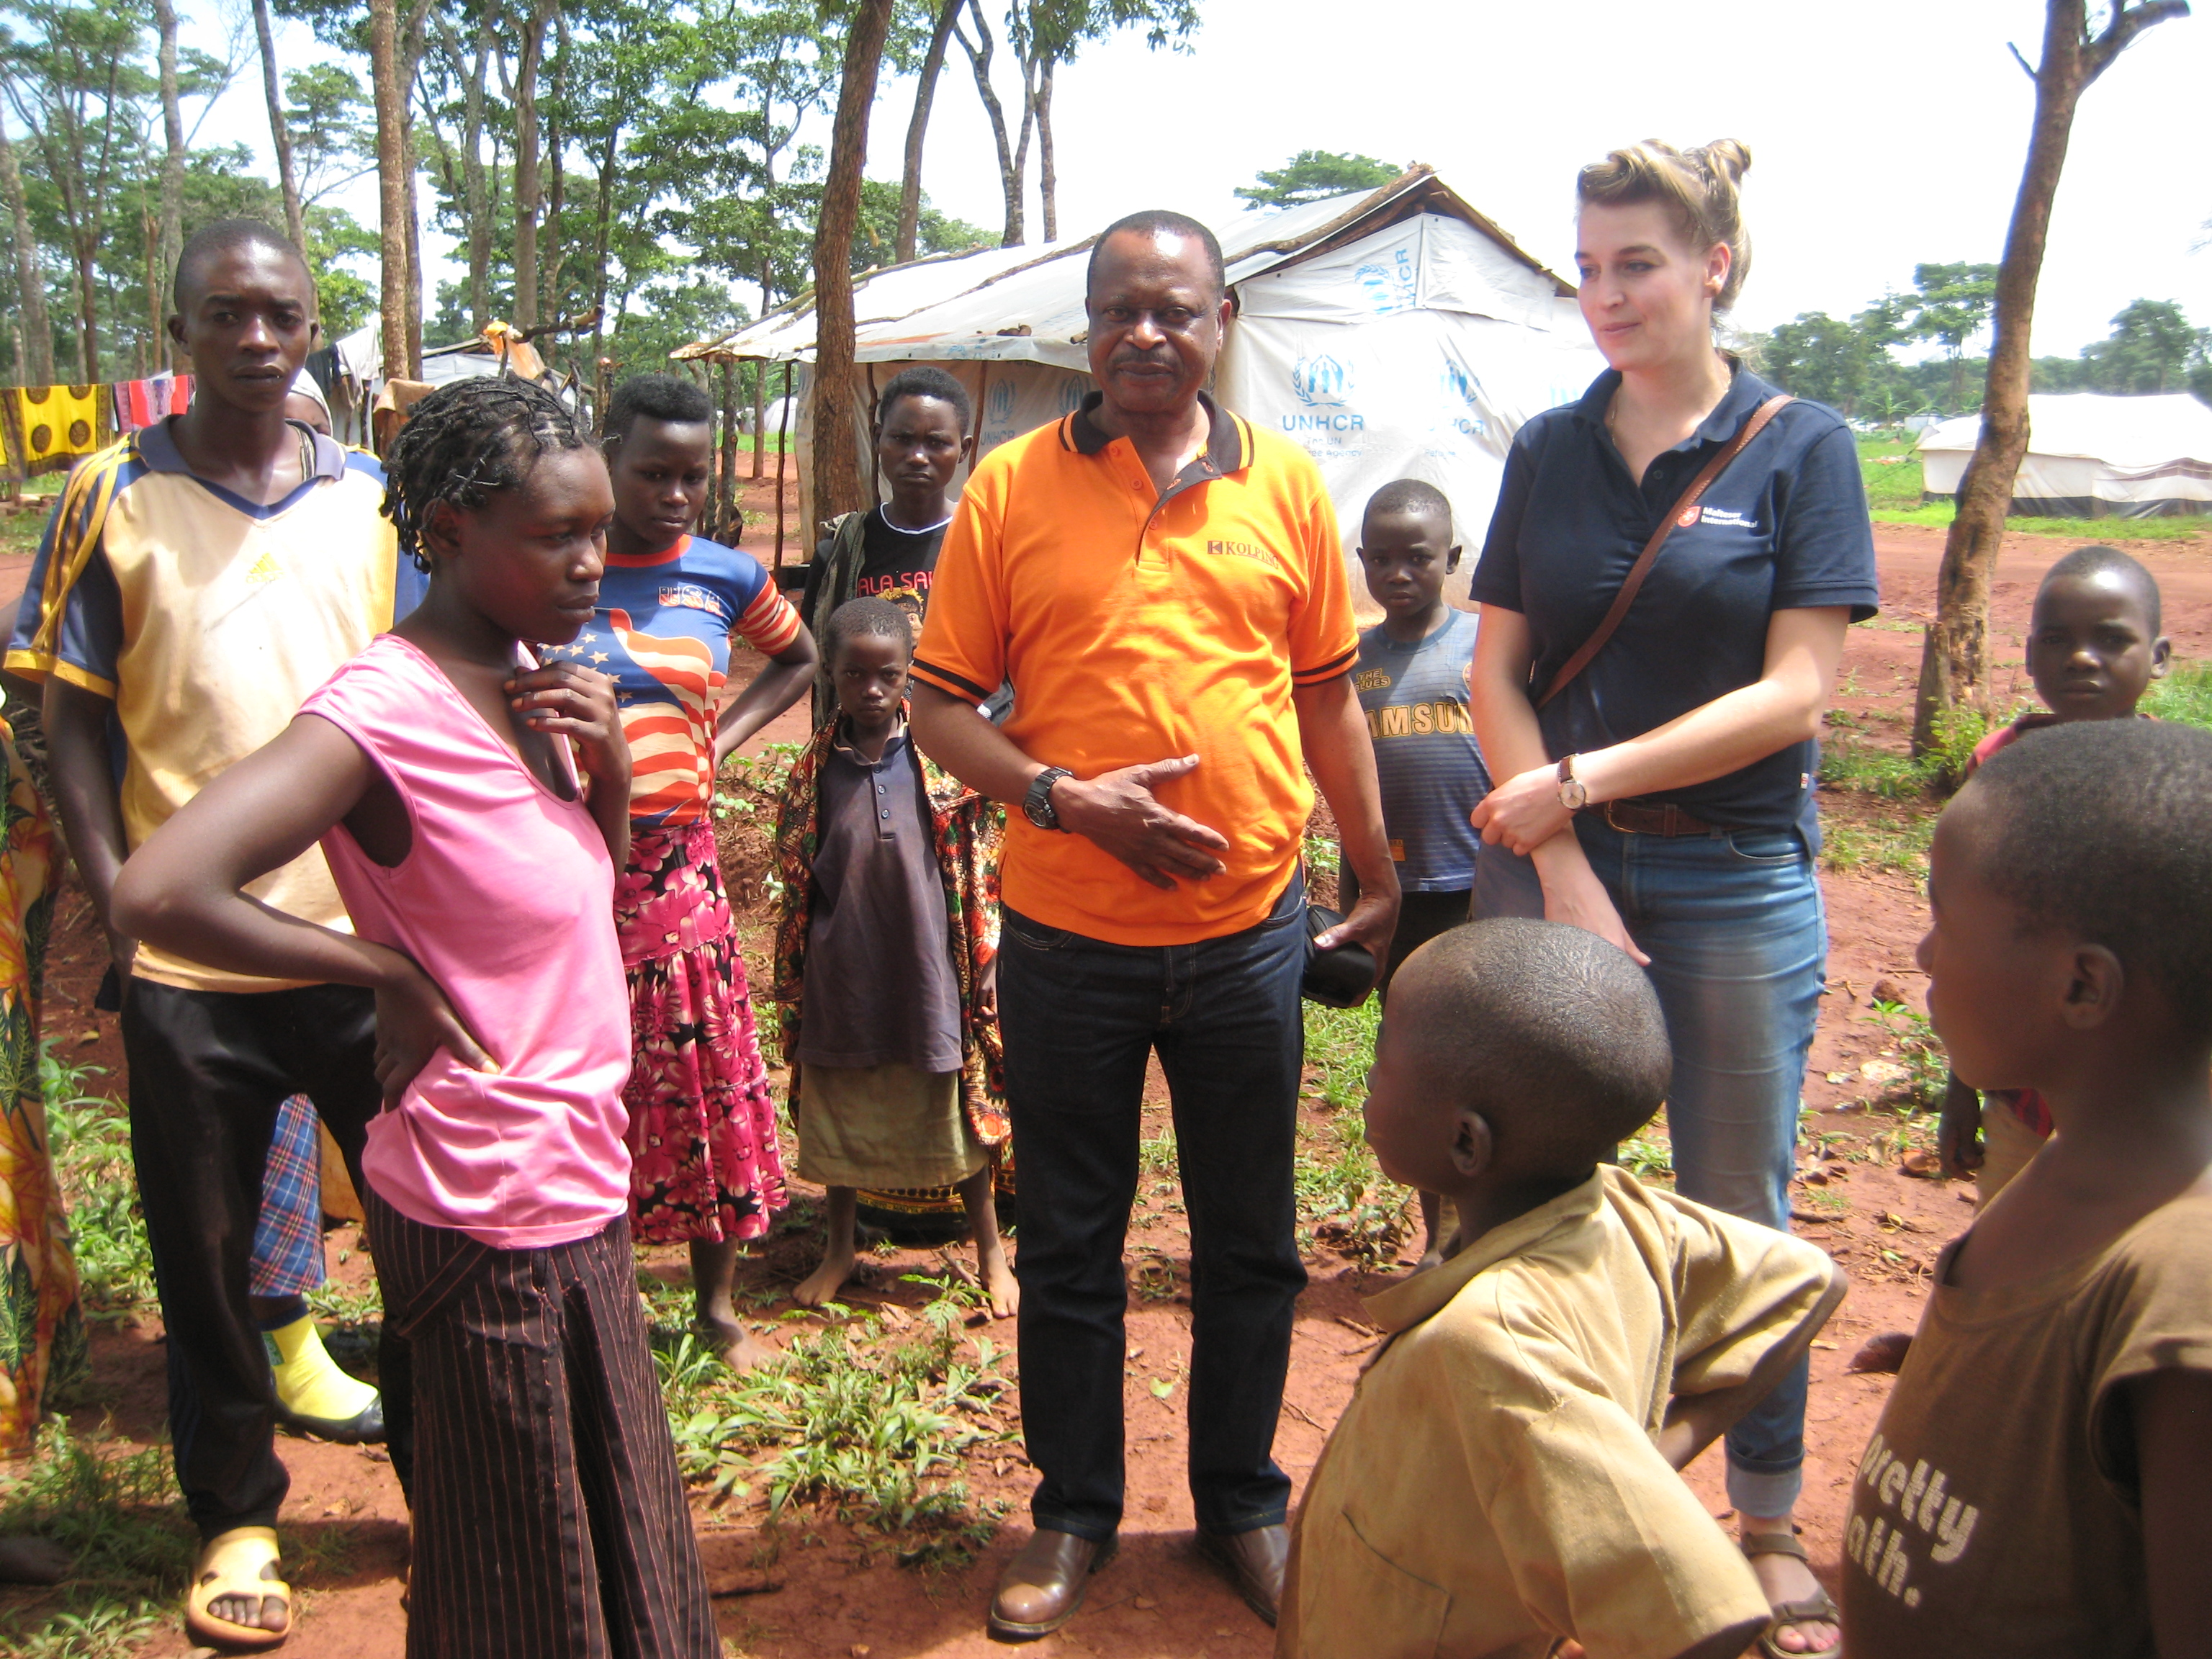 Iovanna Lesniewski, responsable des projets pour Malteser International, avec des réfugiés burundais dans un camp de réfugiés en Tanzanie. Photo: Malteser International